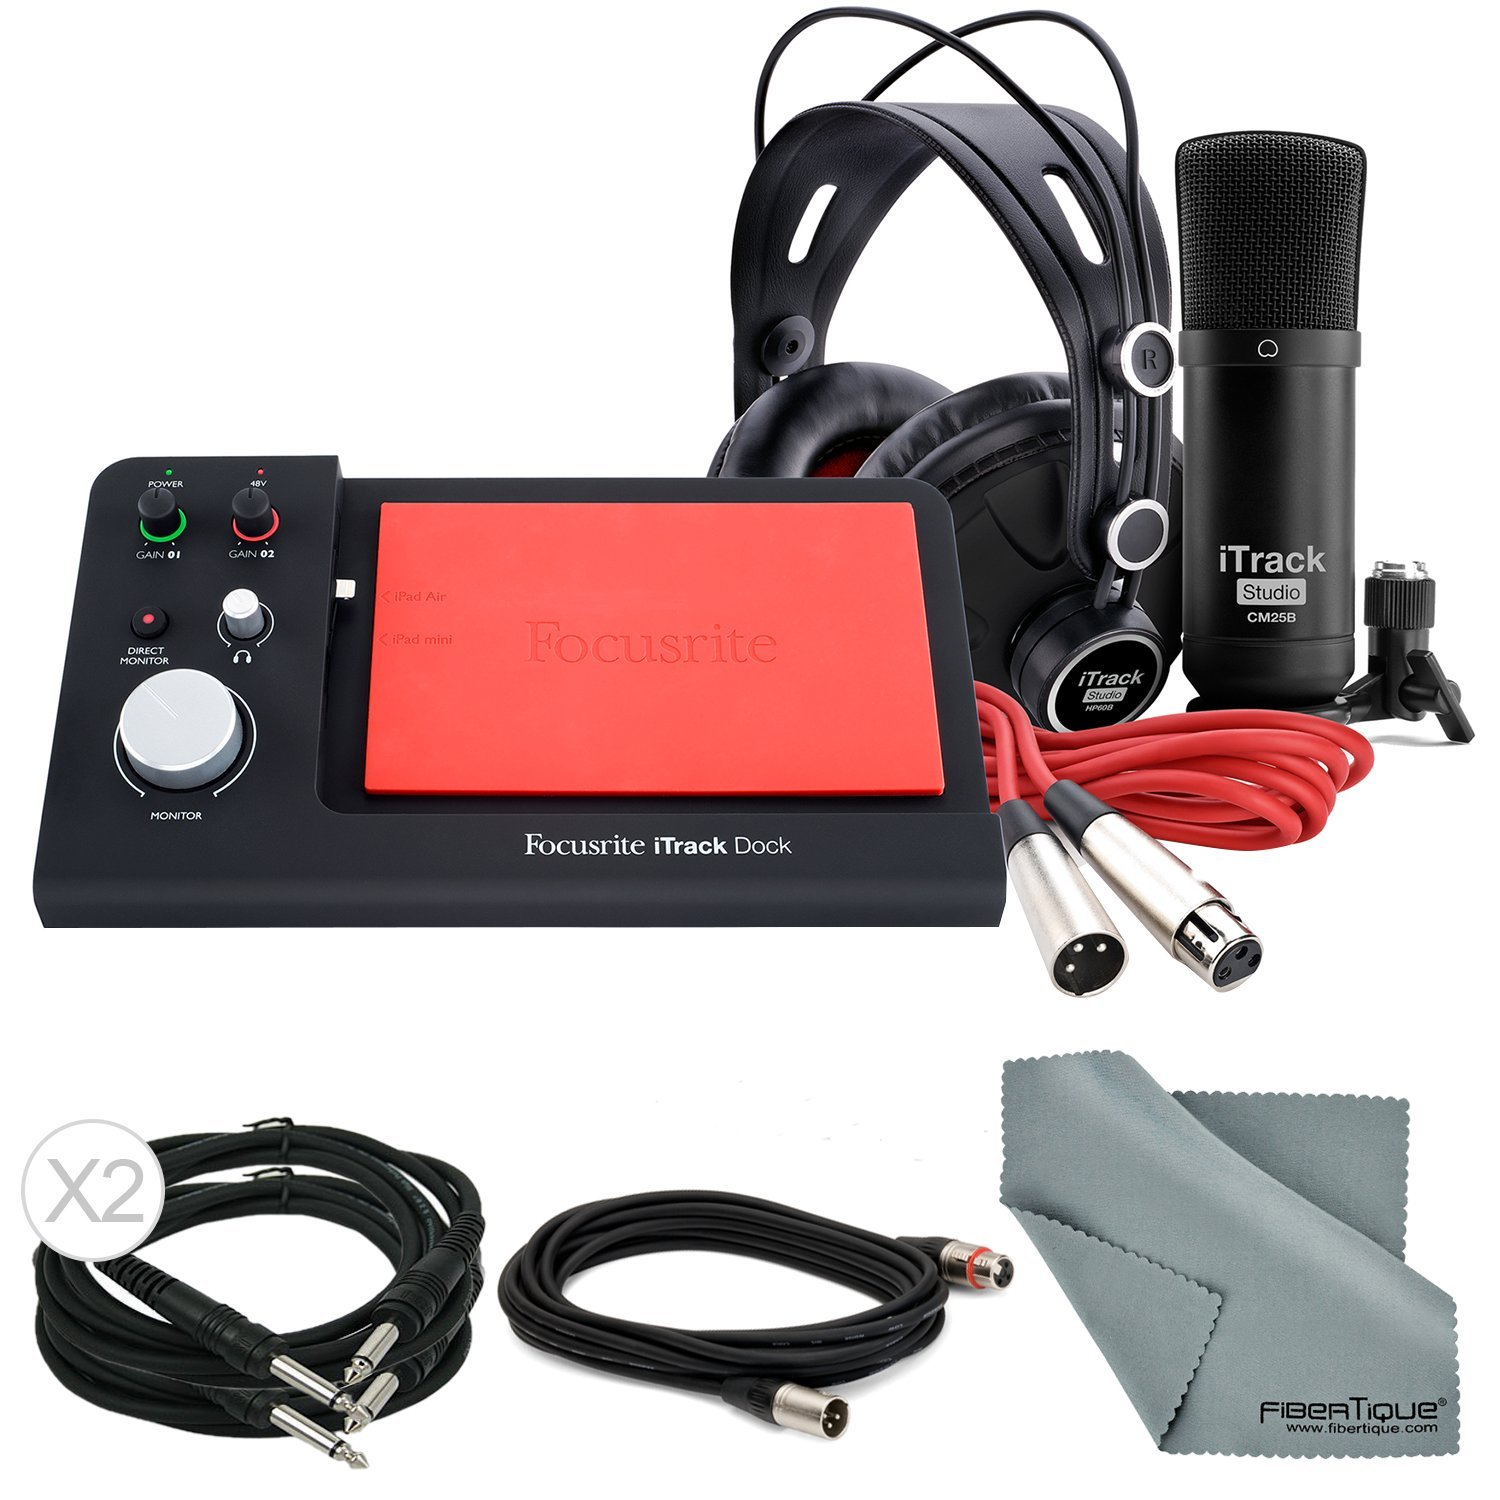 Focusrite iTrack Dock Professional Studio Kit Deluxe Bundle Contains iTrack Dock + CM25S + HP60 W/ Complete Bundle and Fibertique Cleaning Cloth